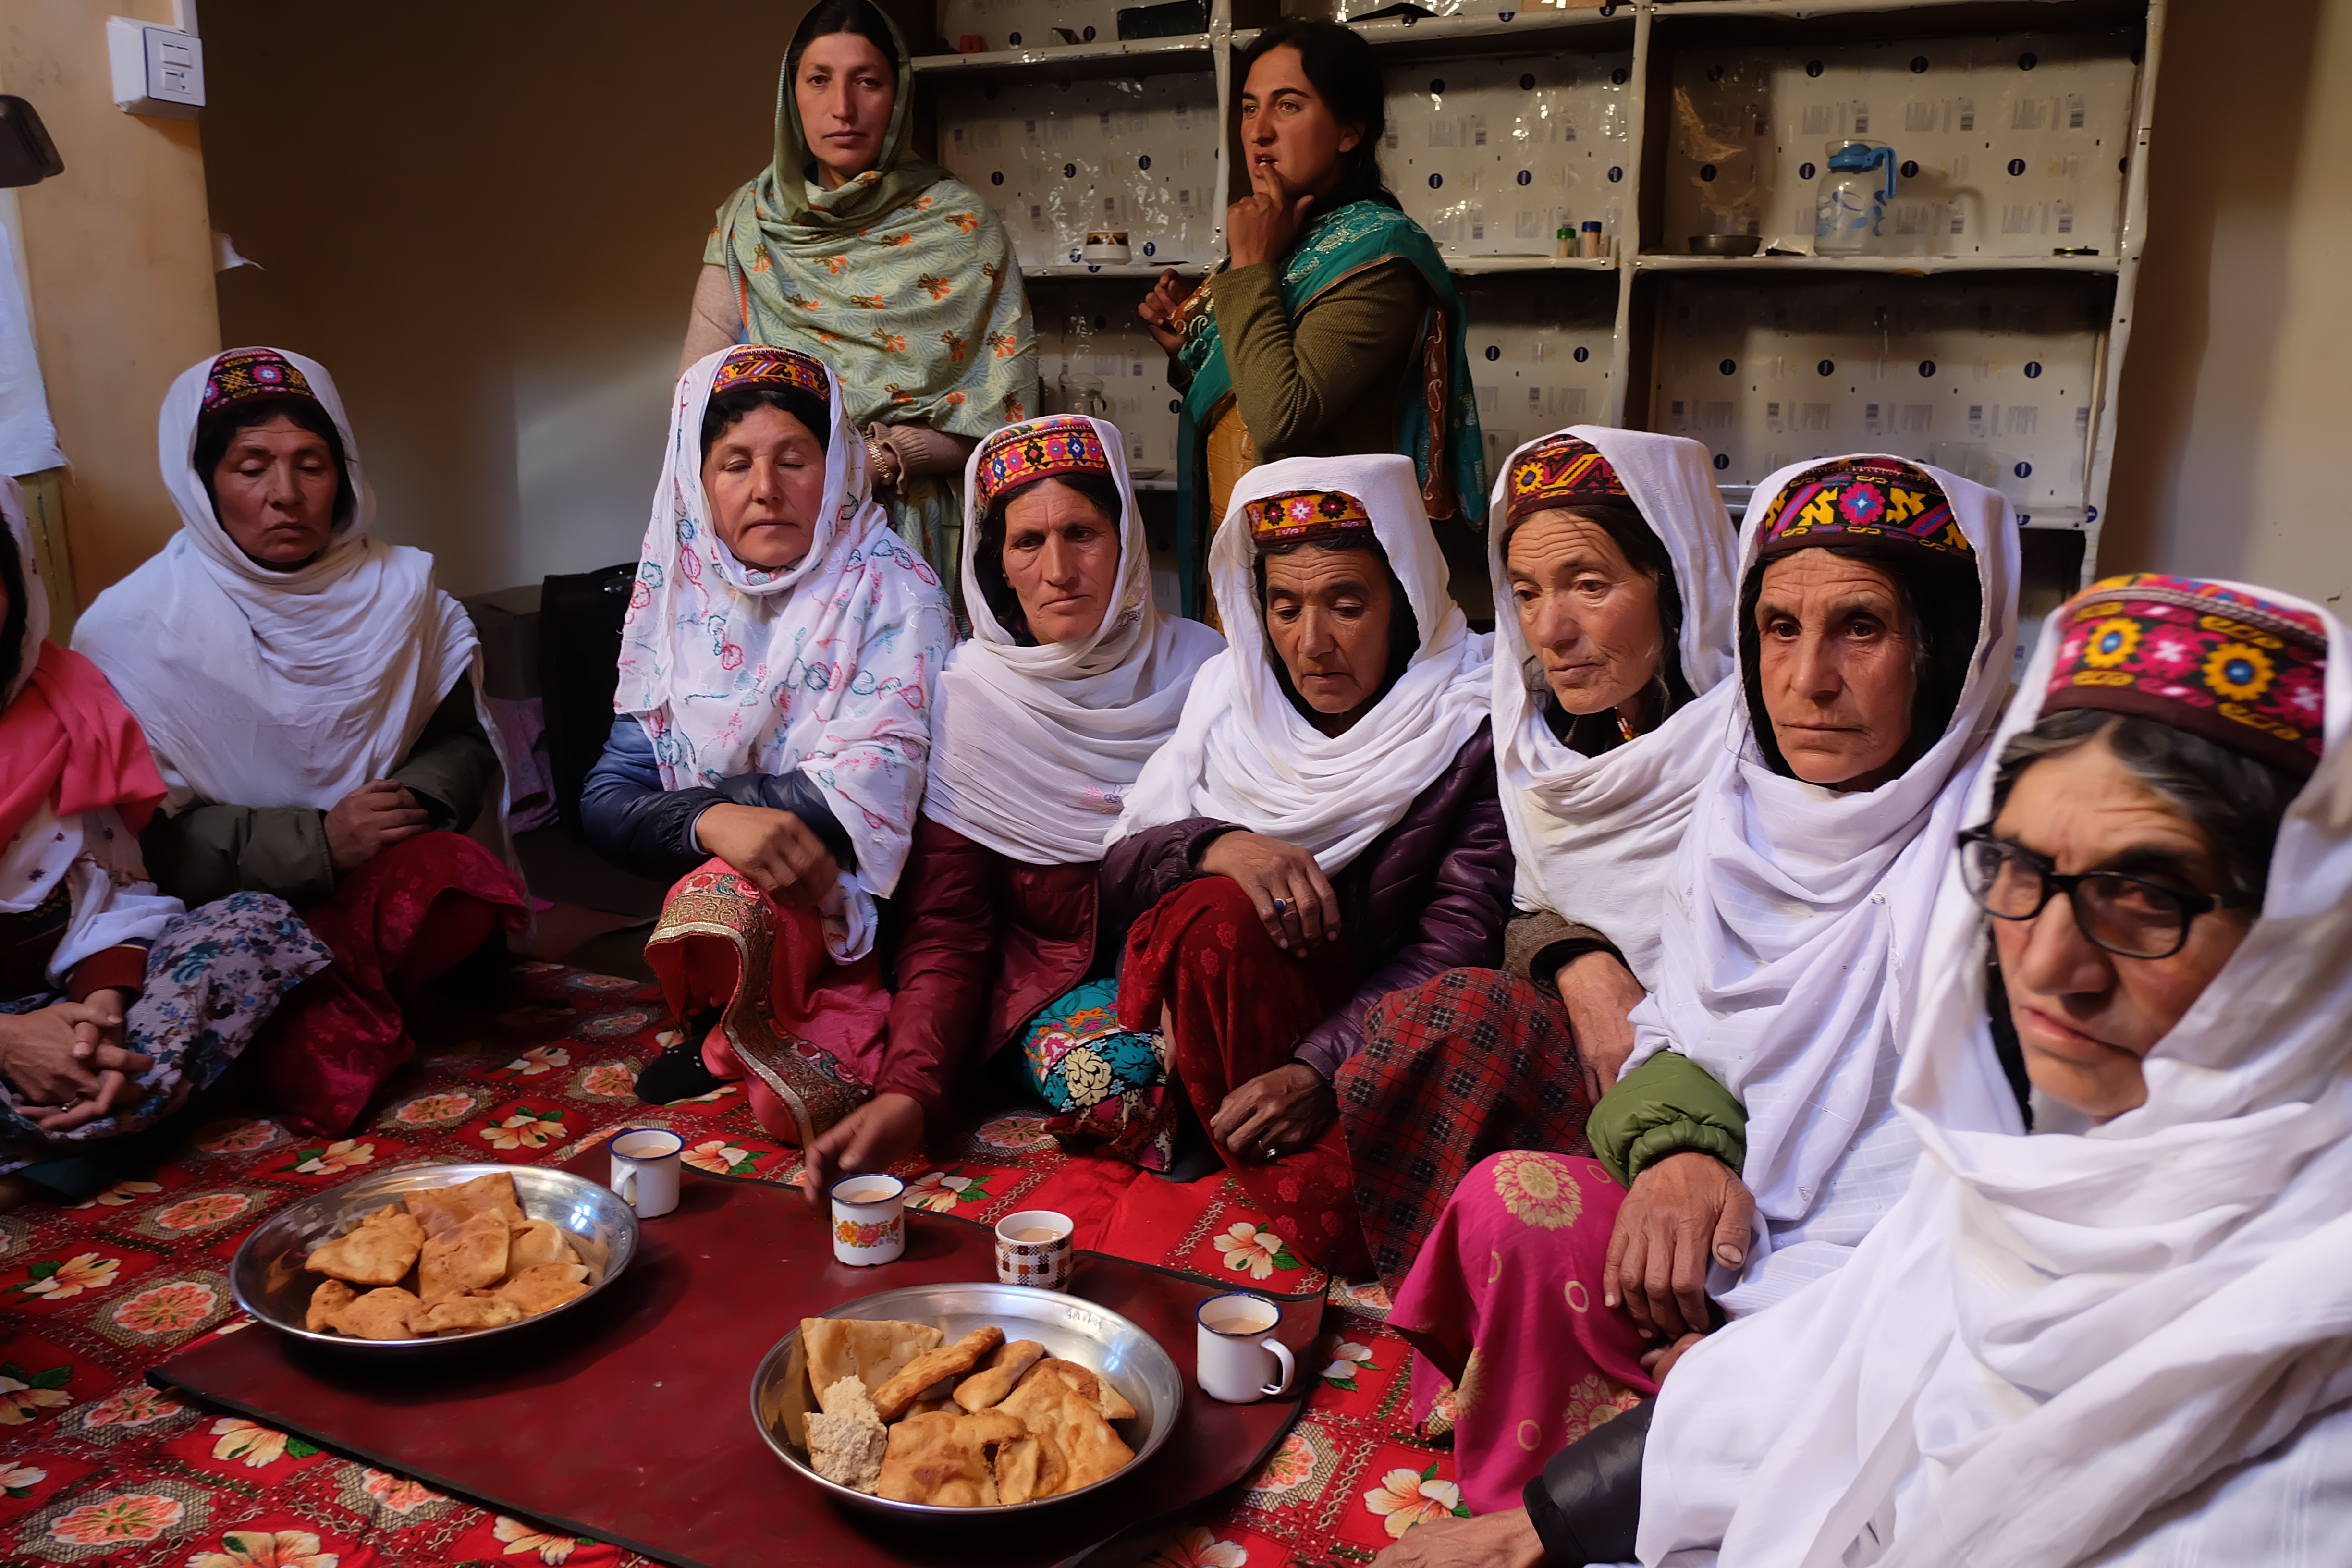 Hunza Women on the occasion of a local wedding. It depicts the richness of cultures in Pakistan